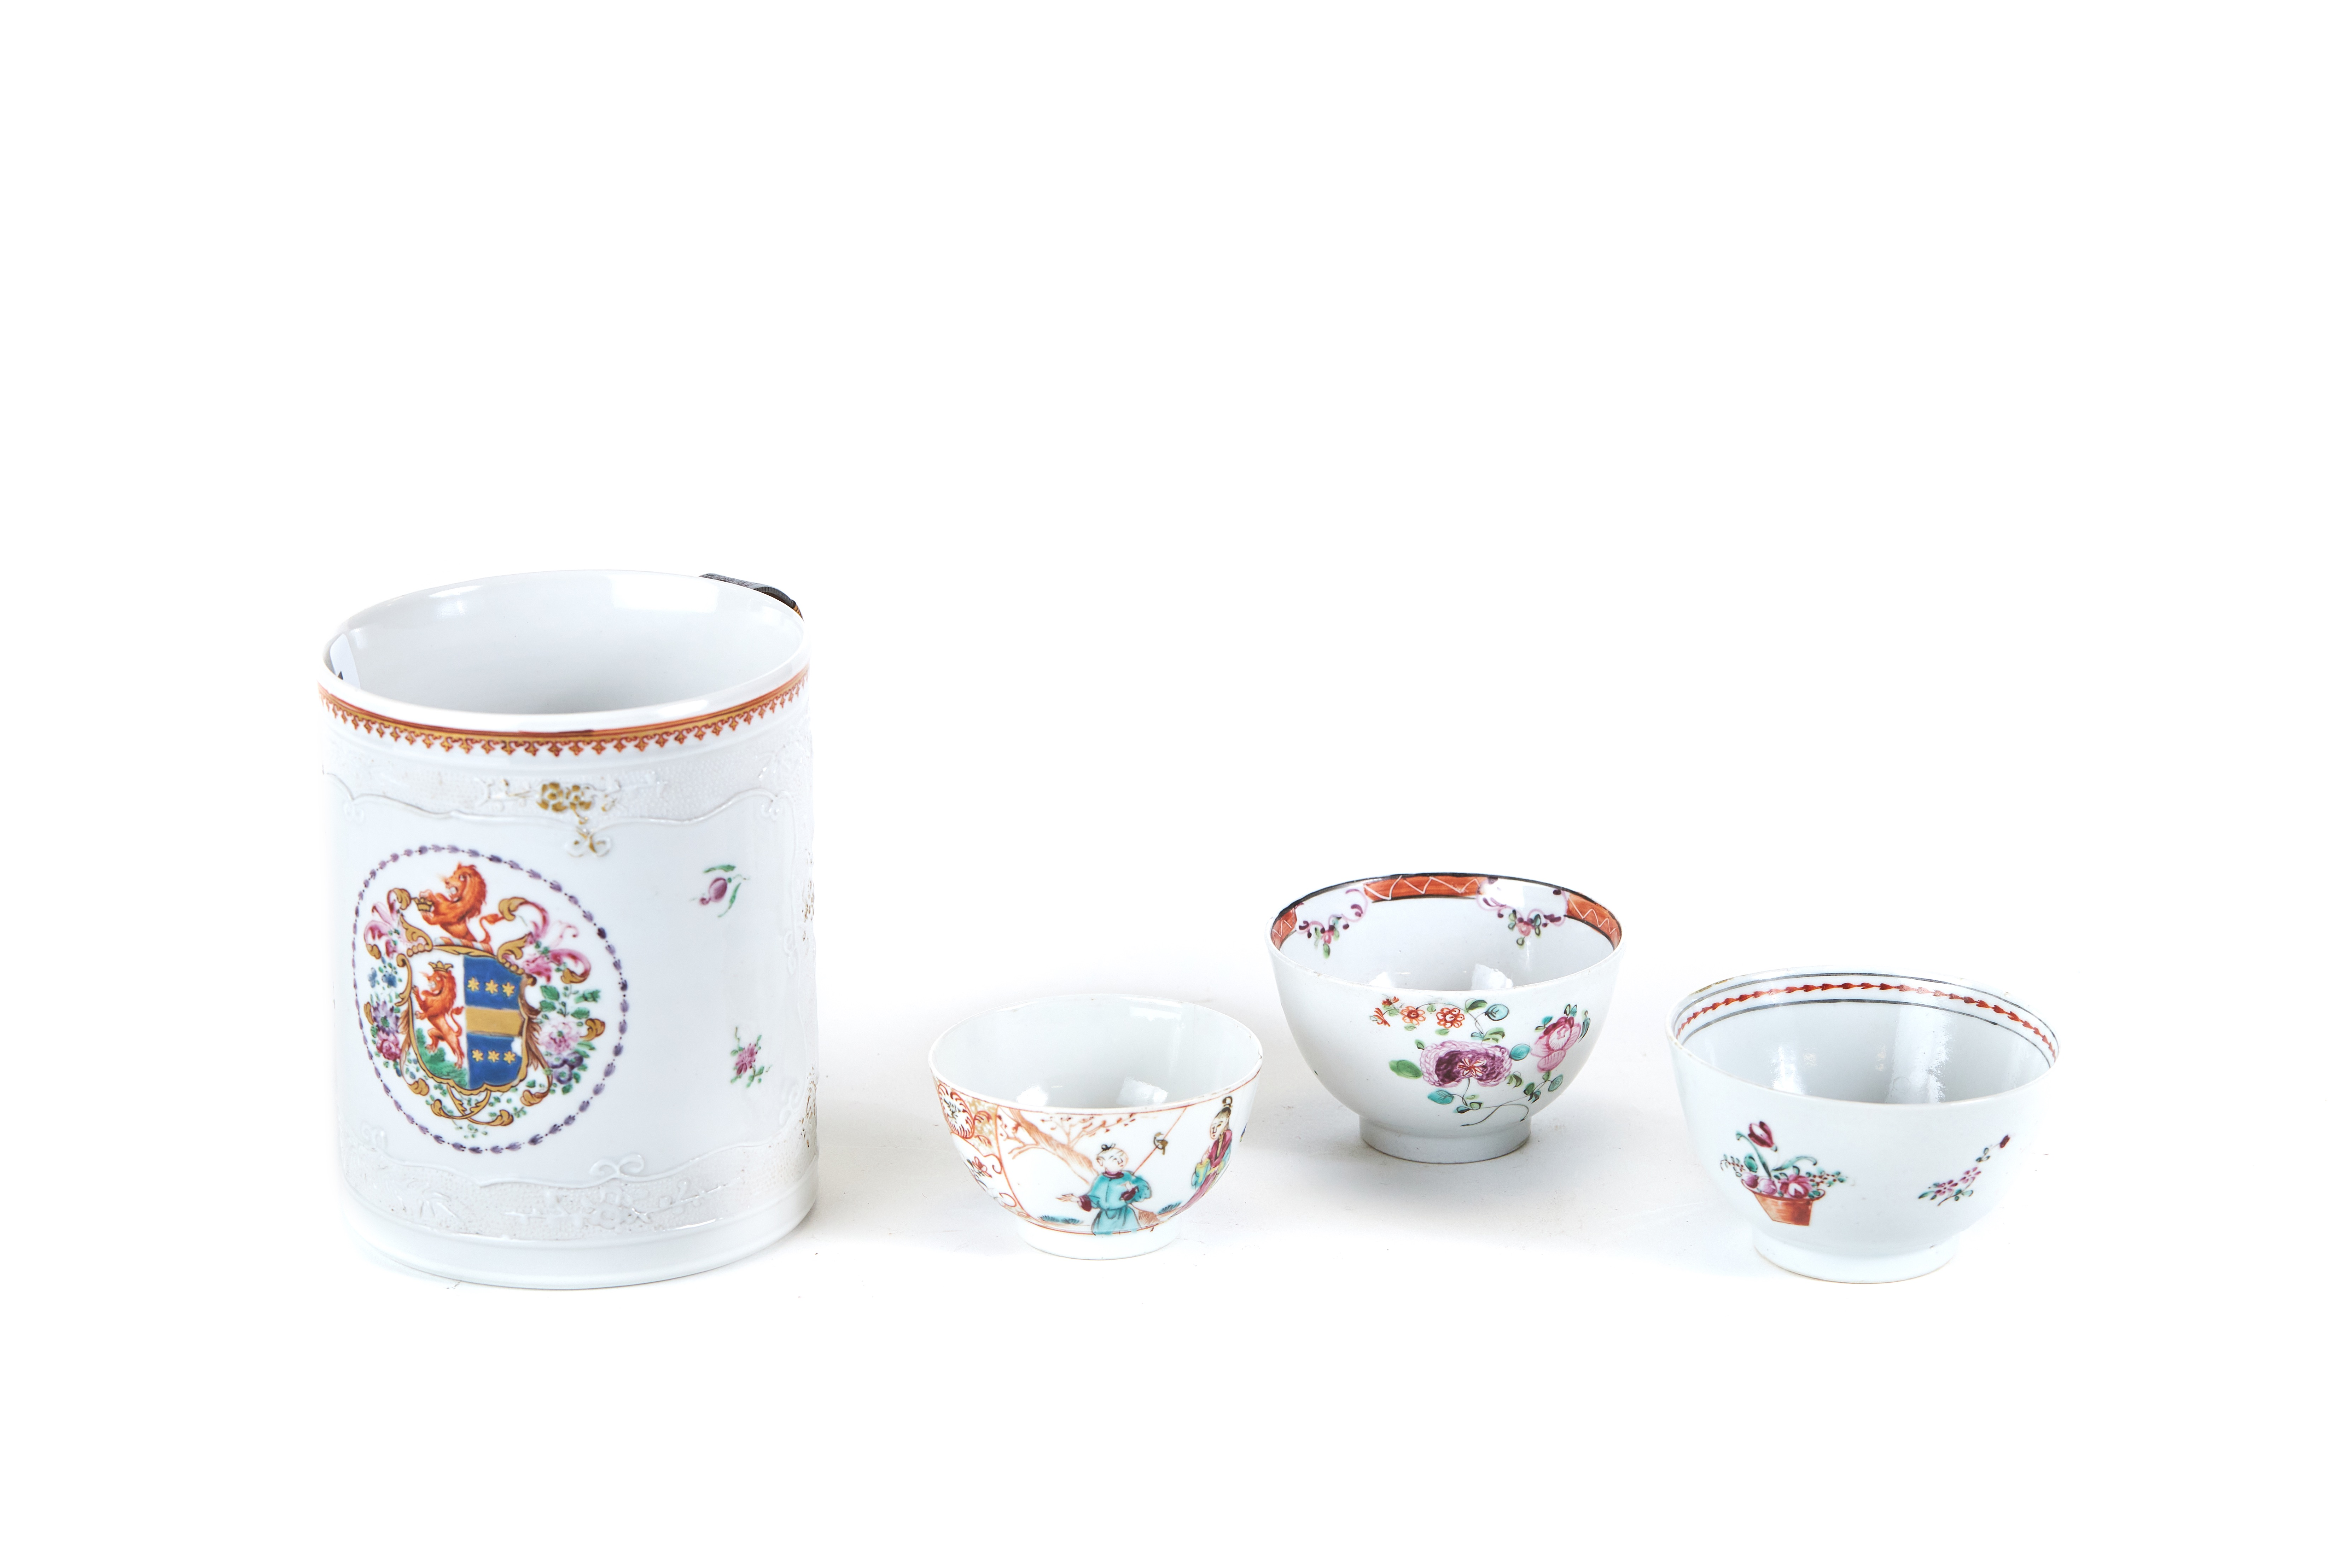 AN 18TH CENTURY CHINESE EXPORT PORCELAIN CIDER MUG decorated with an armorial,